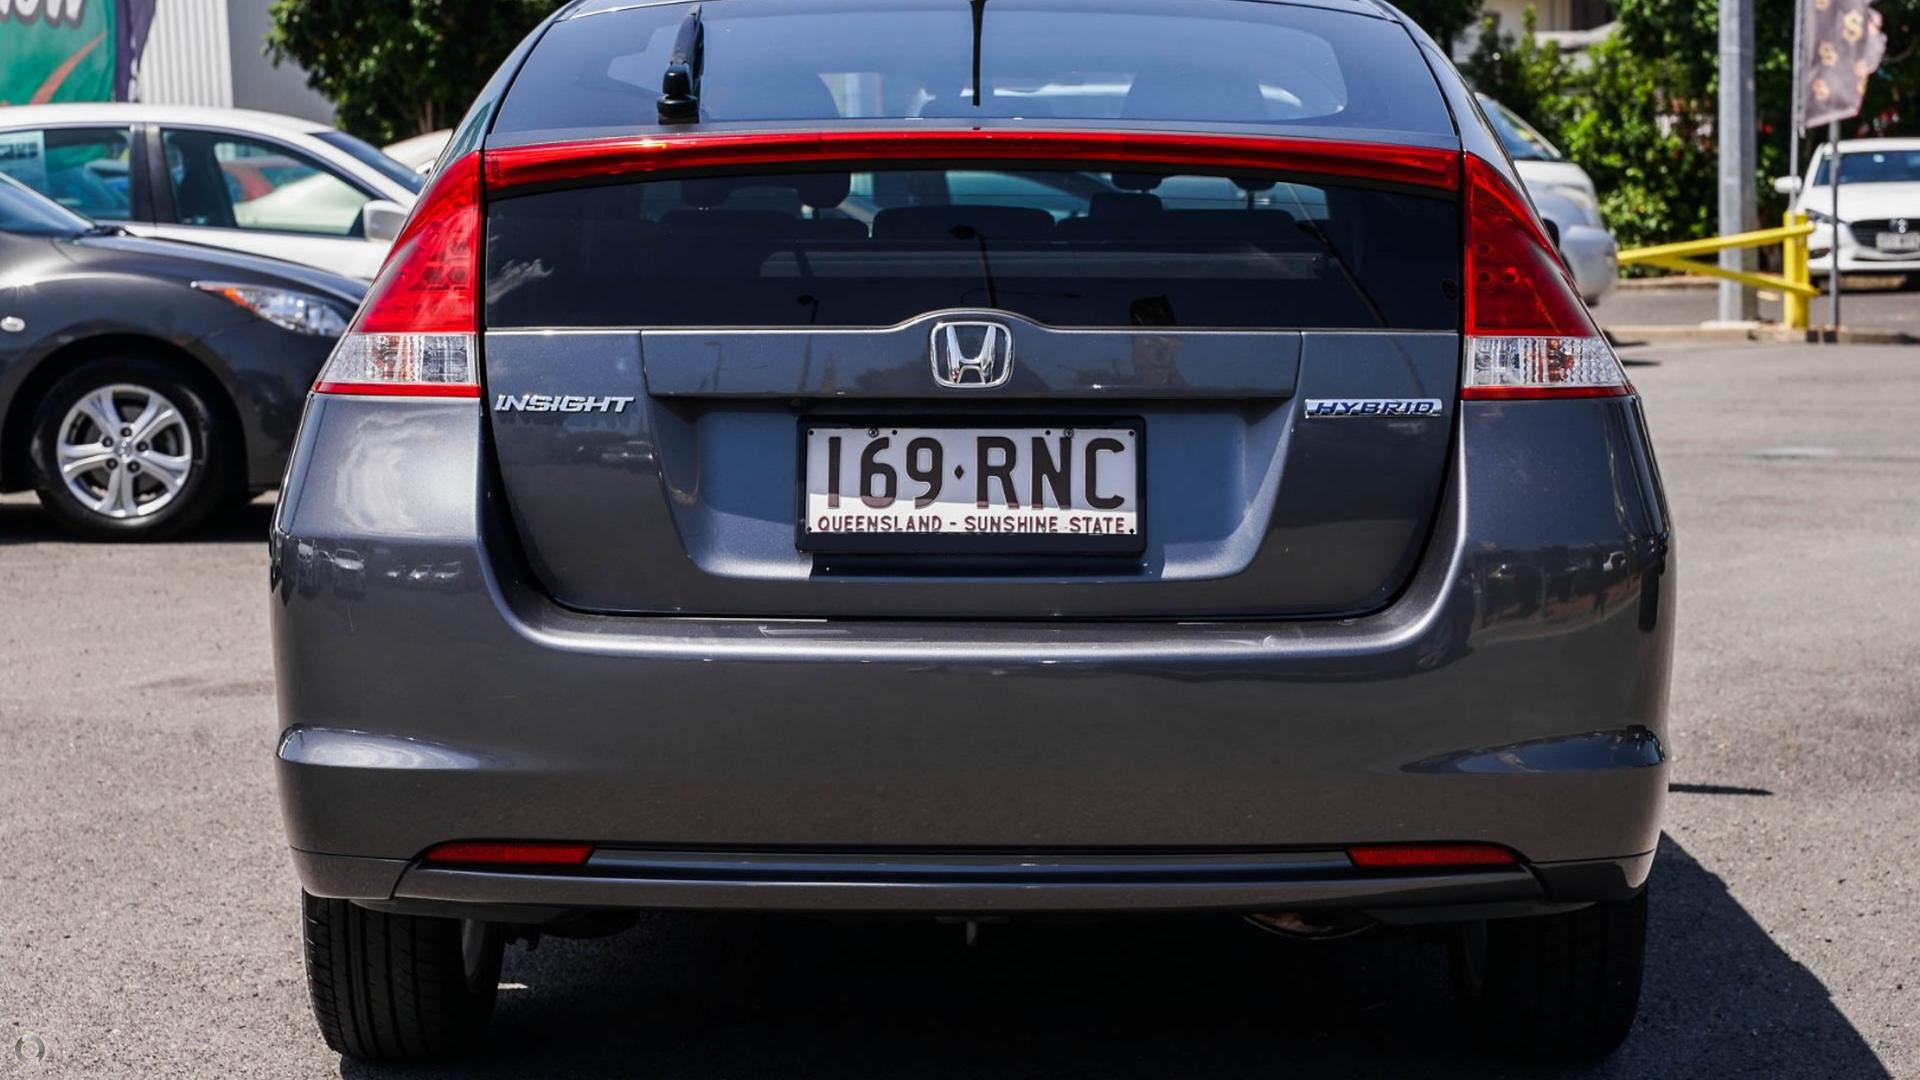 2011 Honda Insight VTi-L ZE